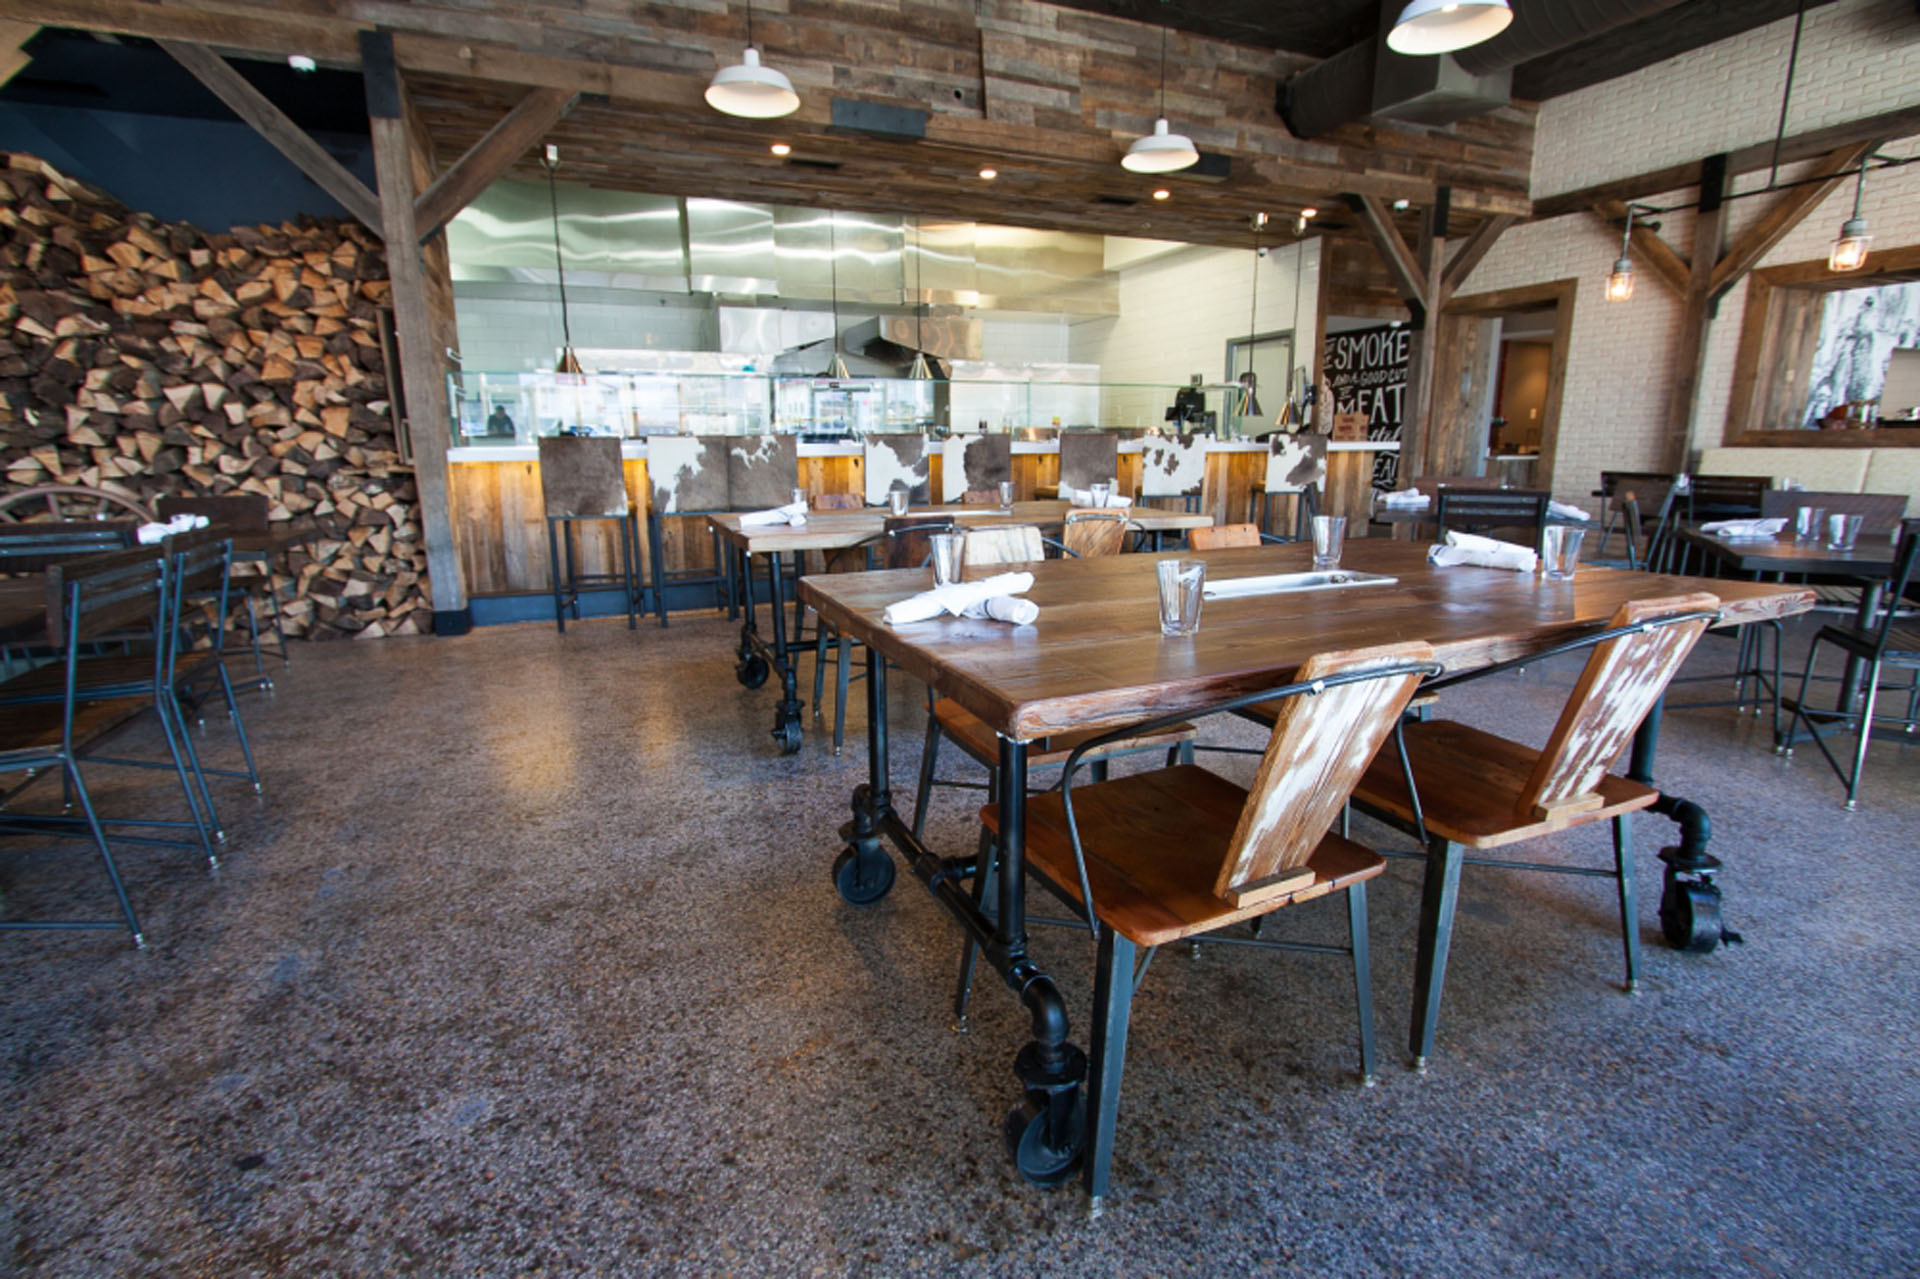 Texas jacks rustic restaurant furniture